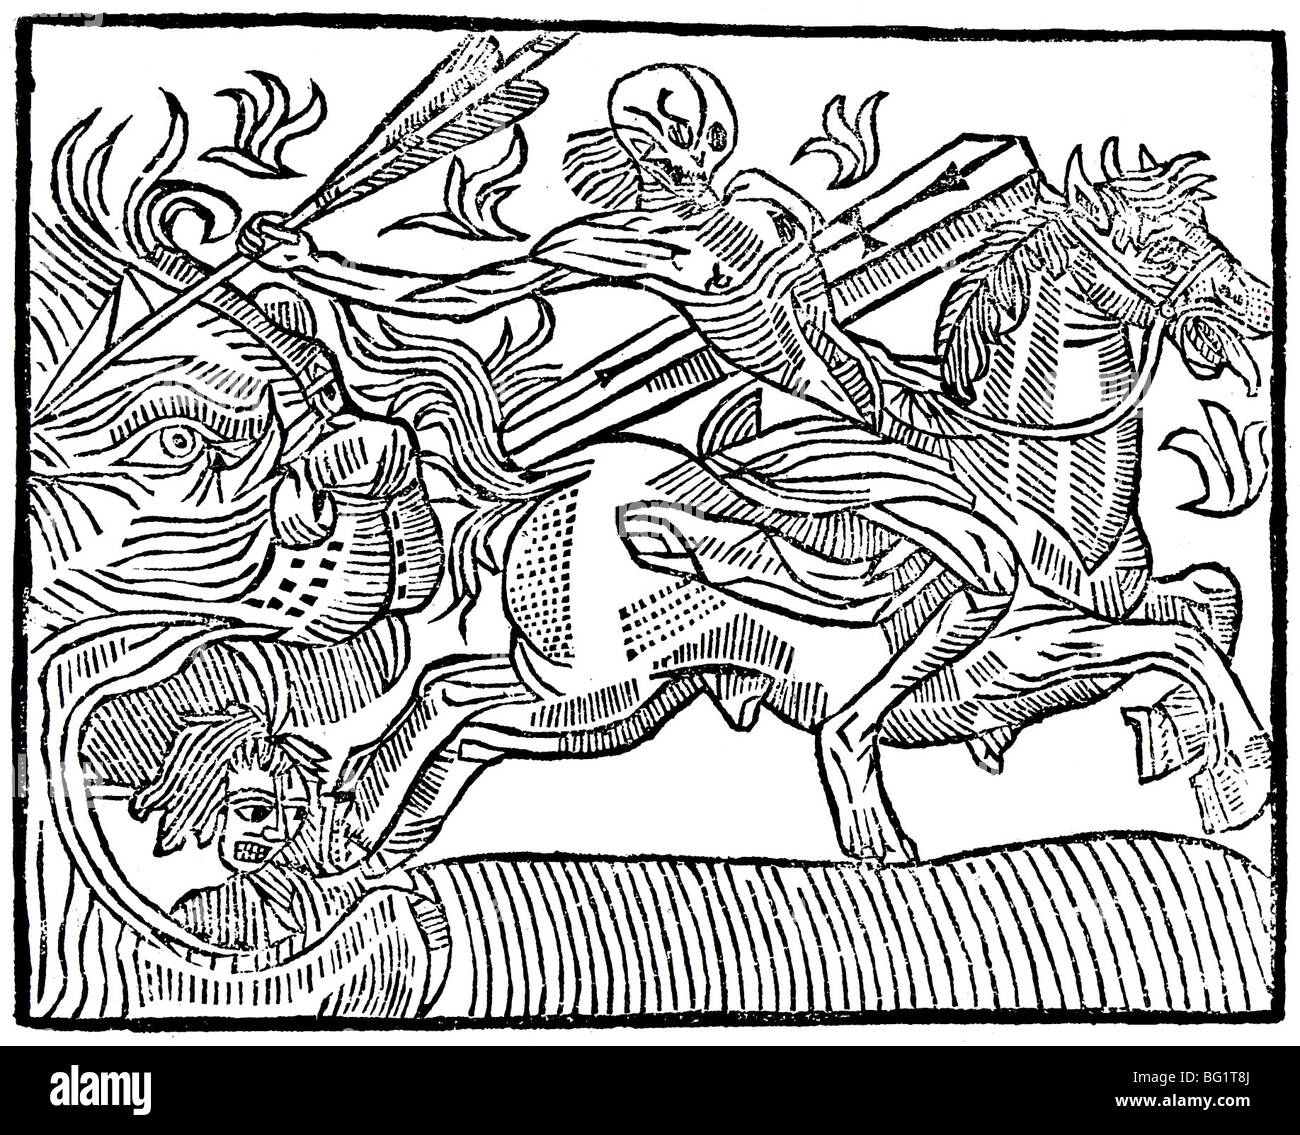 ST ANTHONY'S FIRE !5th century woodcut showing in the form of Death on horseback - Stock Image